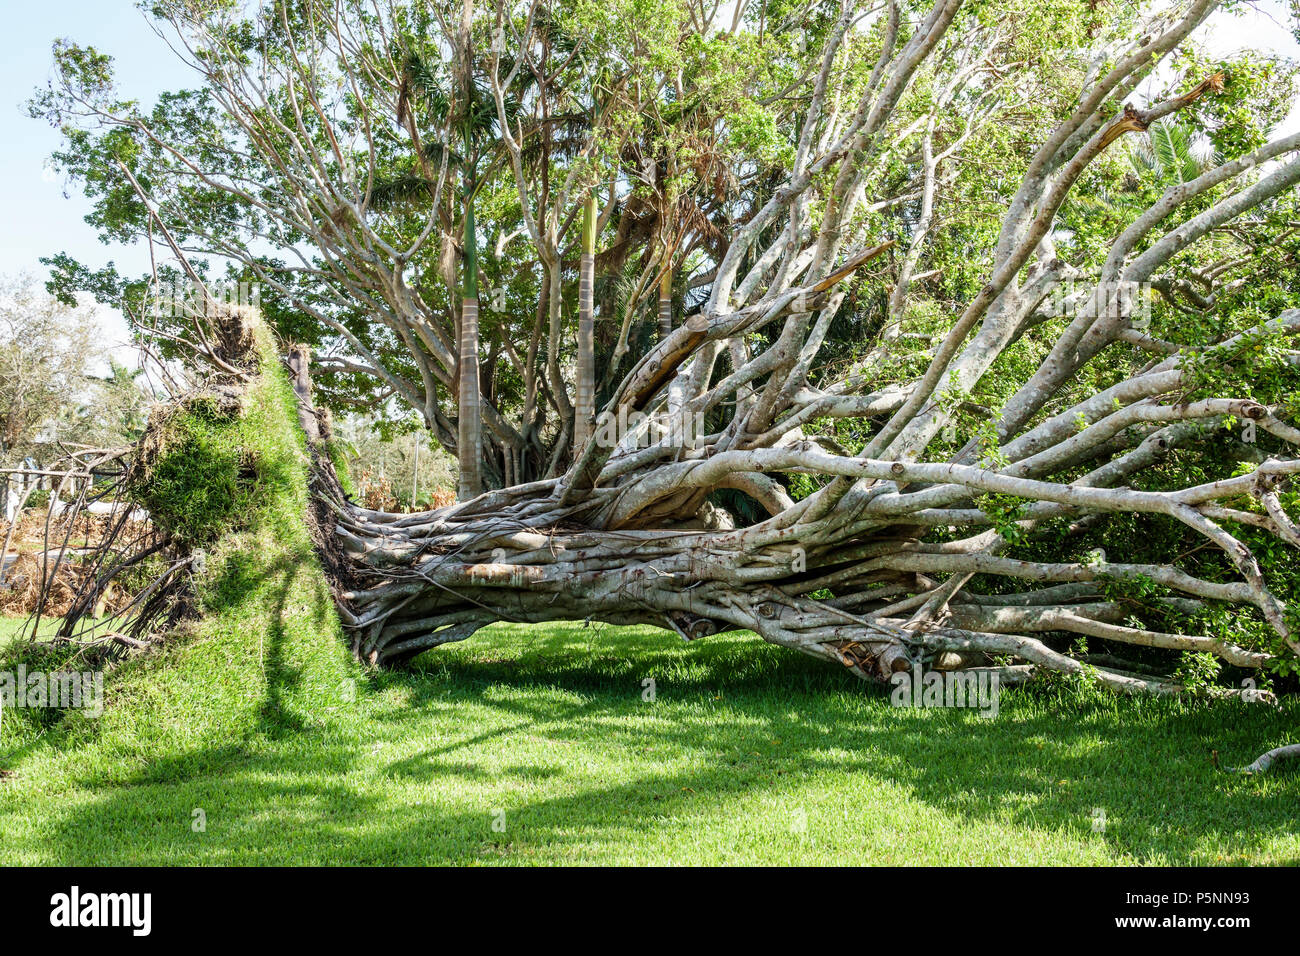 Naples Florida Crayton Road Hurricane Irma wind storm damage destruction aftermath fallen toppled over large tree root system lawn - Stock Image